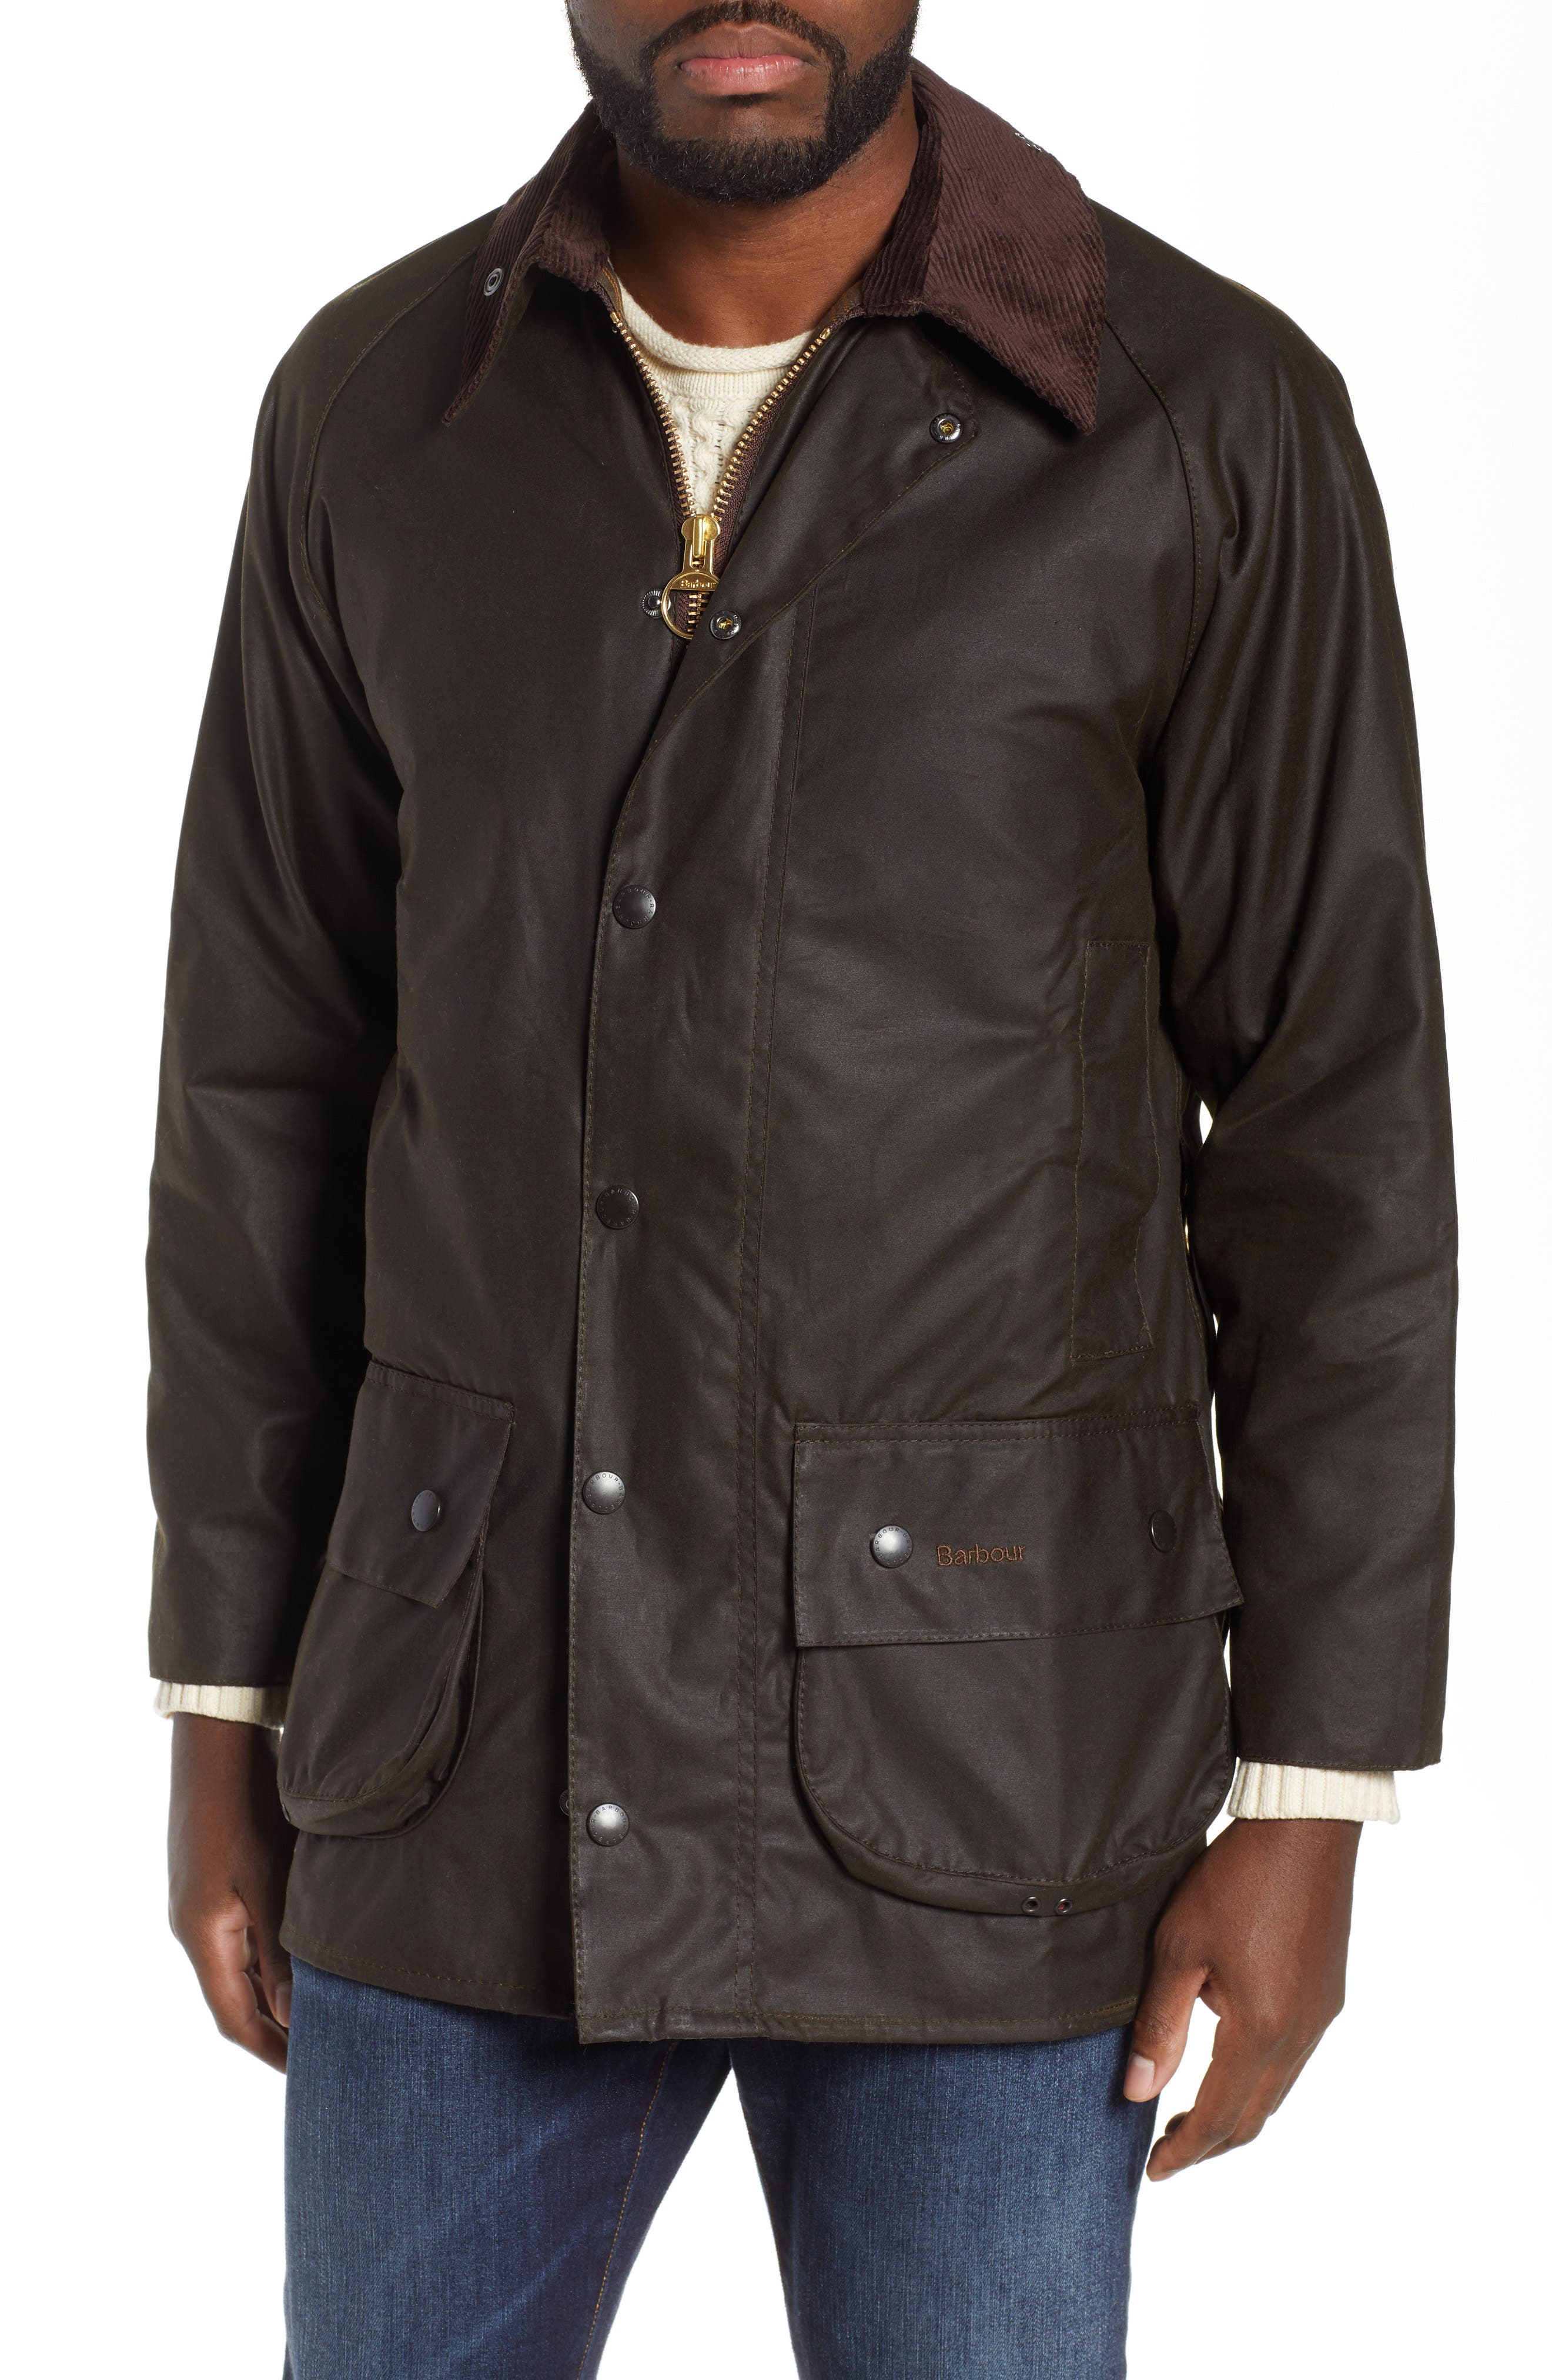 BARBOUR,                             'Classic Beaufort' Relaxed Fit Waxed Cotton Jacket,                             Alternate thumbnail 2, color,                             OLIVE